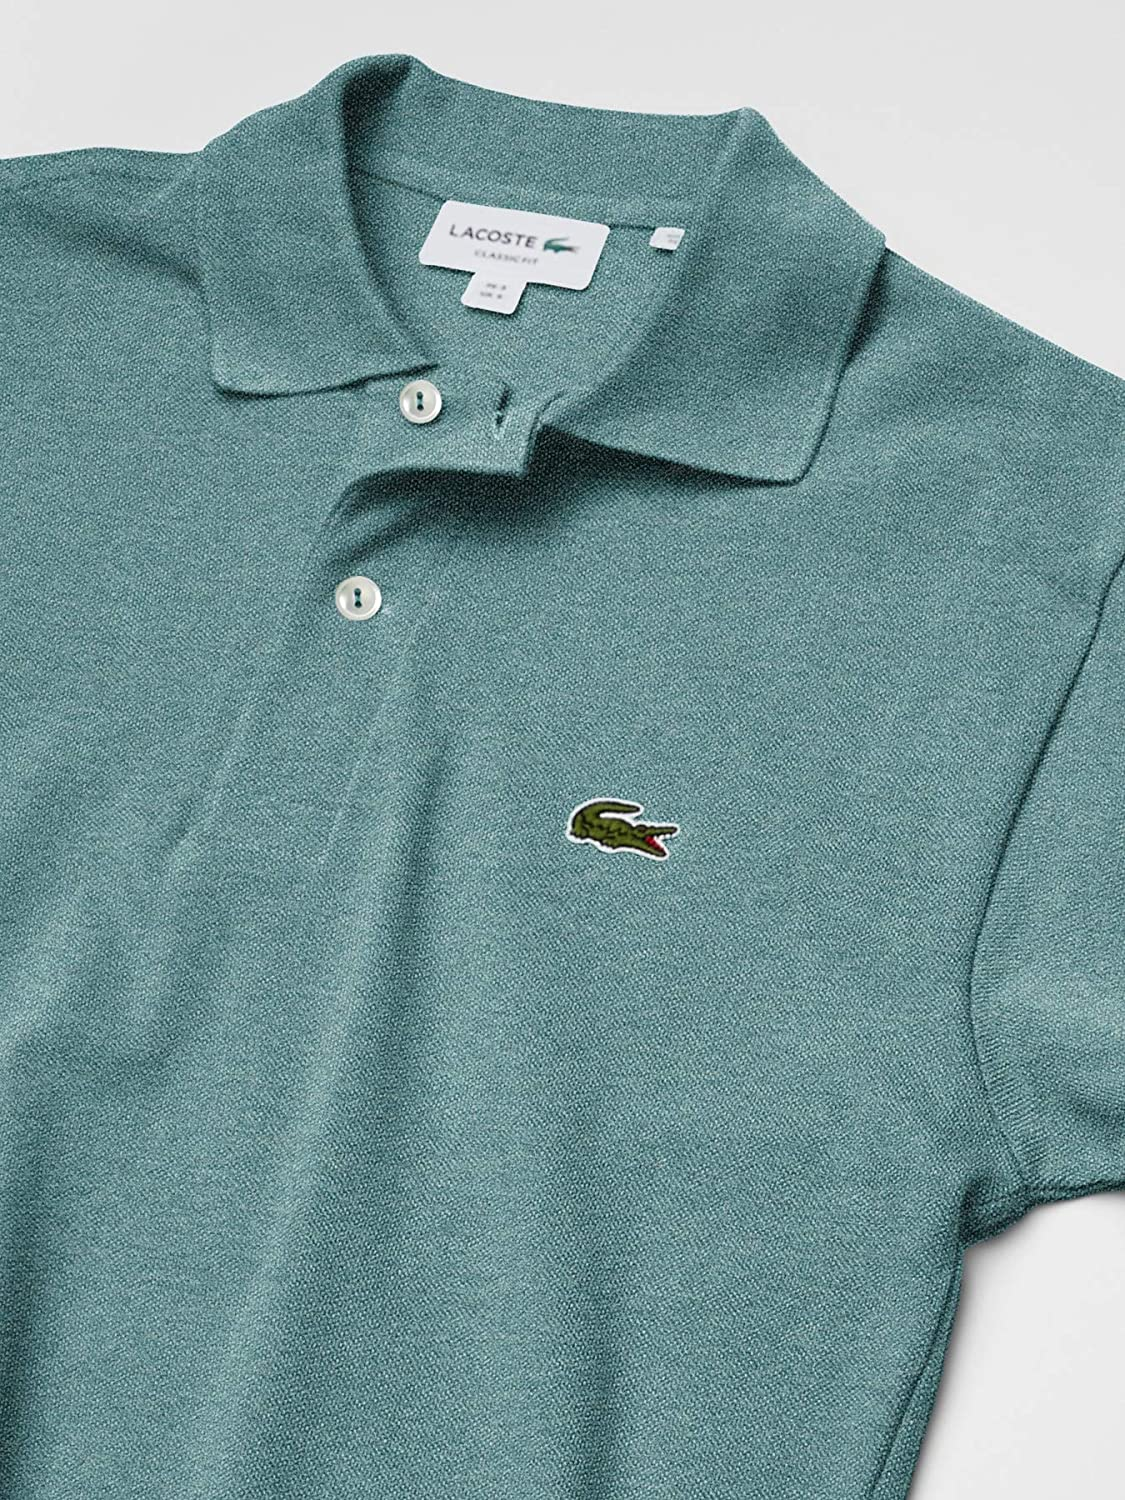 Lacoste Mens Short Sleeve Classic Chine L.12.12 Polo Shirt